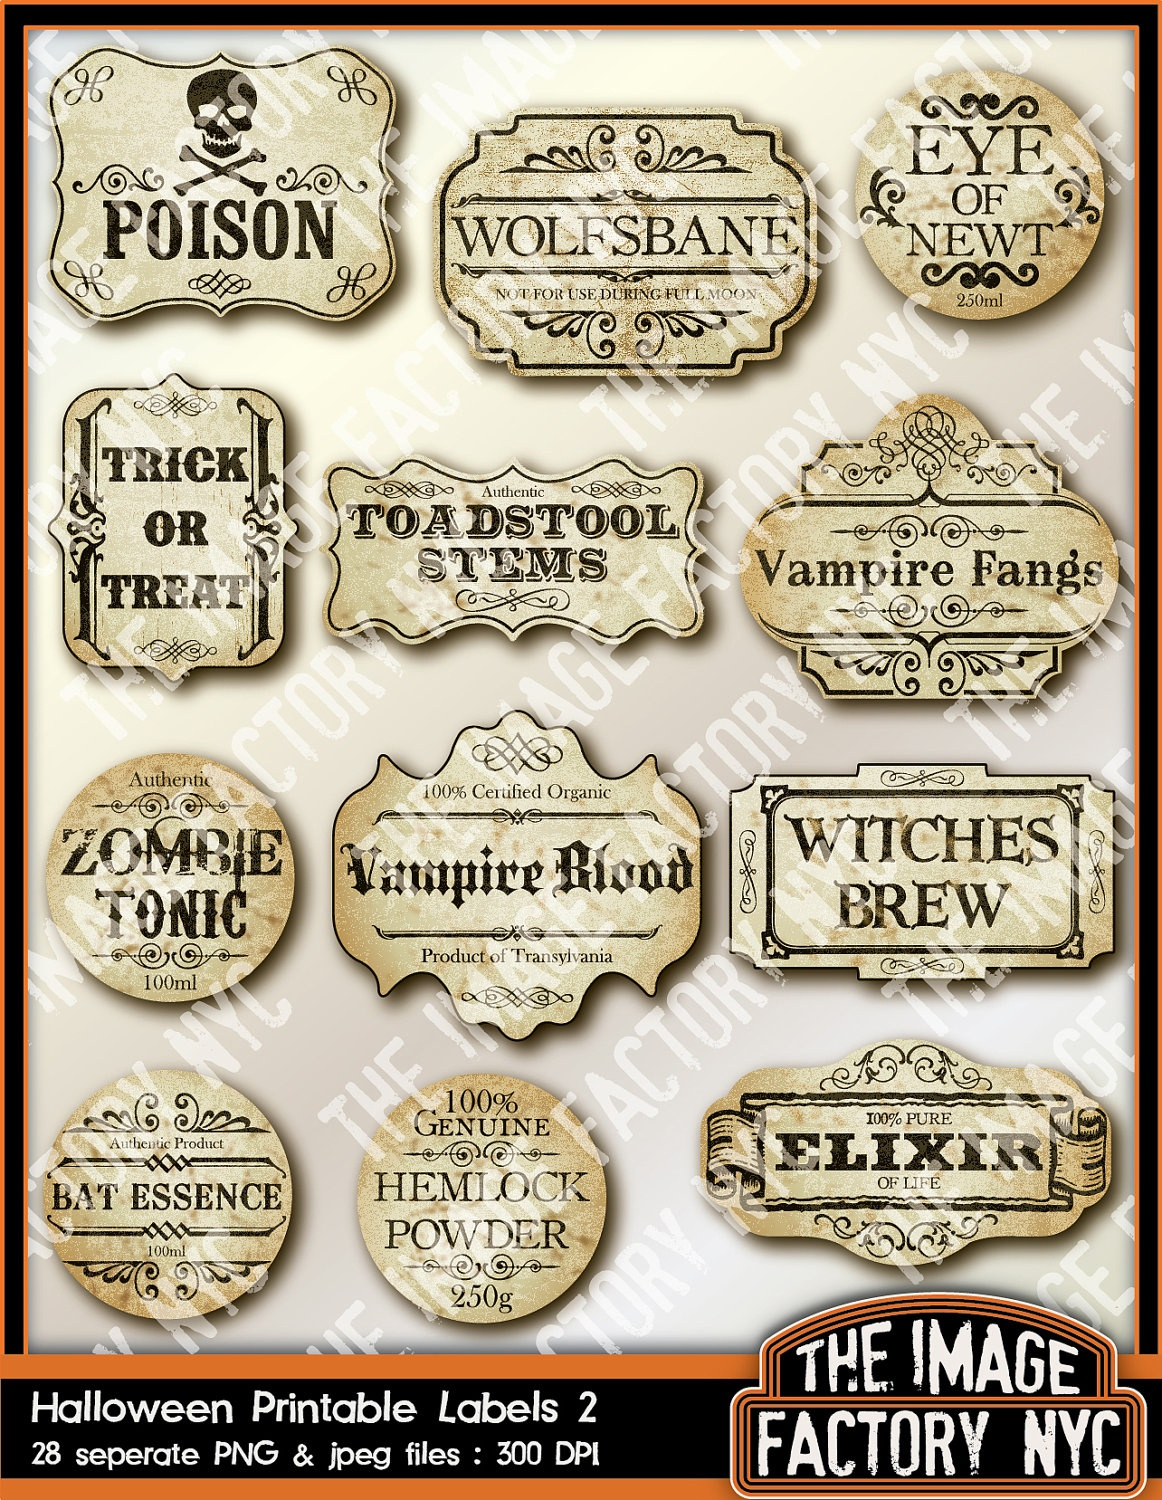 Halloween Bottle Labels Printable Free (91+ Images In Collection) Page 3 - Free Printable Halloween Bottle Labels